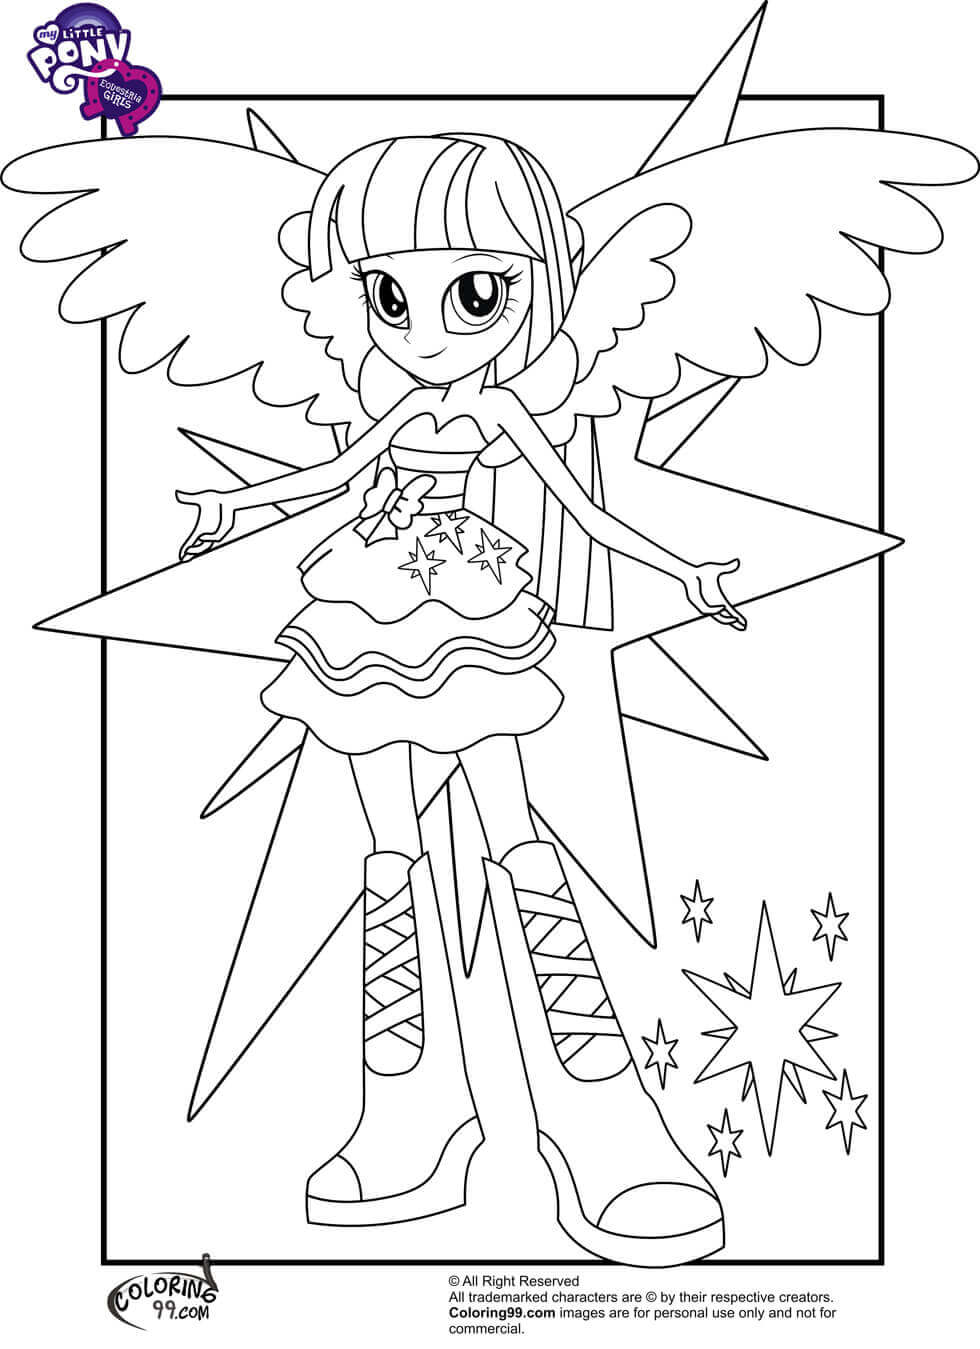 Twilight Sparkle From My Little Pony Equestria Girls Coloring Page